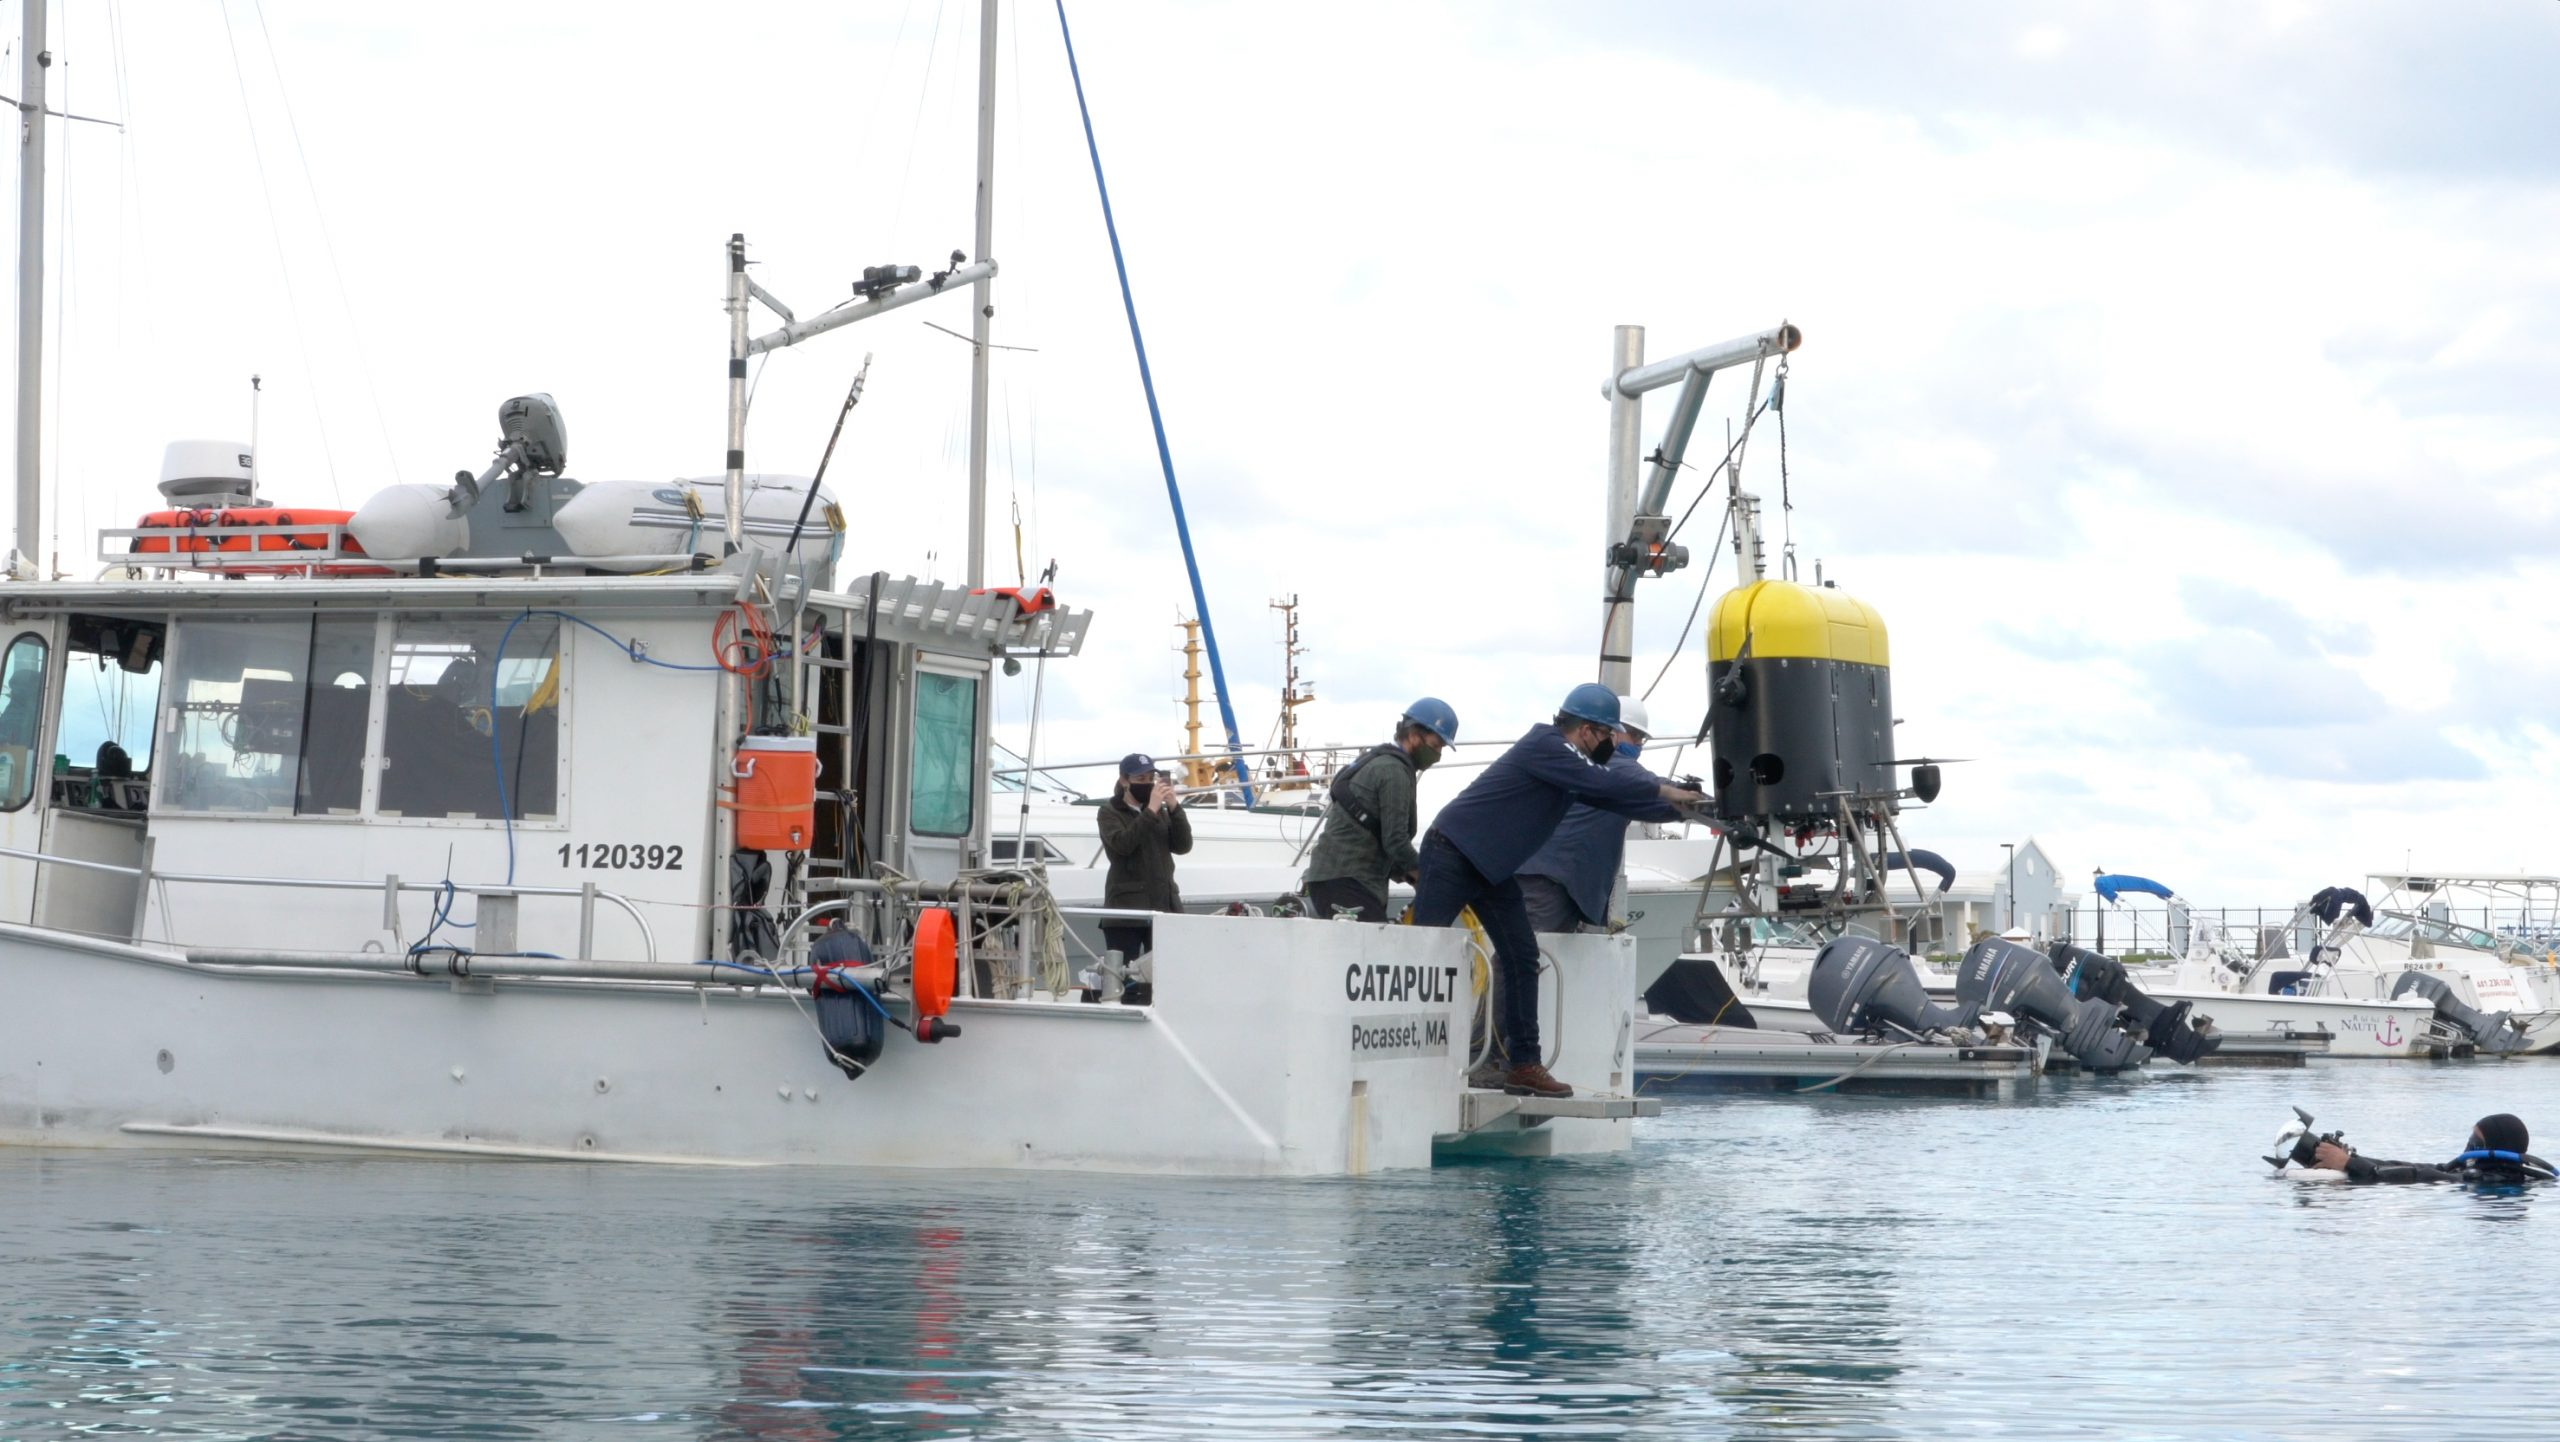 Docked at a marina, engineers Jordan Stanway and Fredrick Marin guide Mesobot into the water for testing in saltwater as engineer and underwater videographer Evan Kovacs captures the moment from the water.